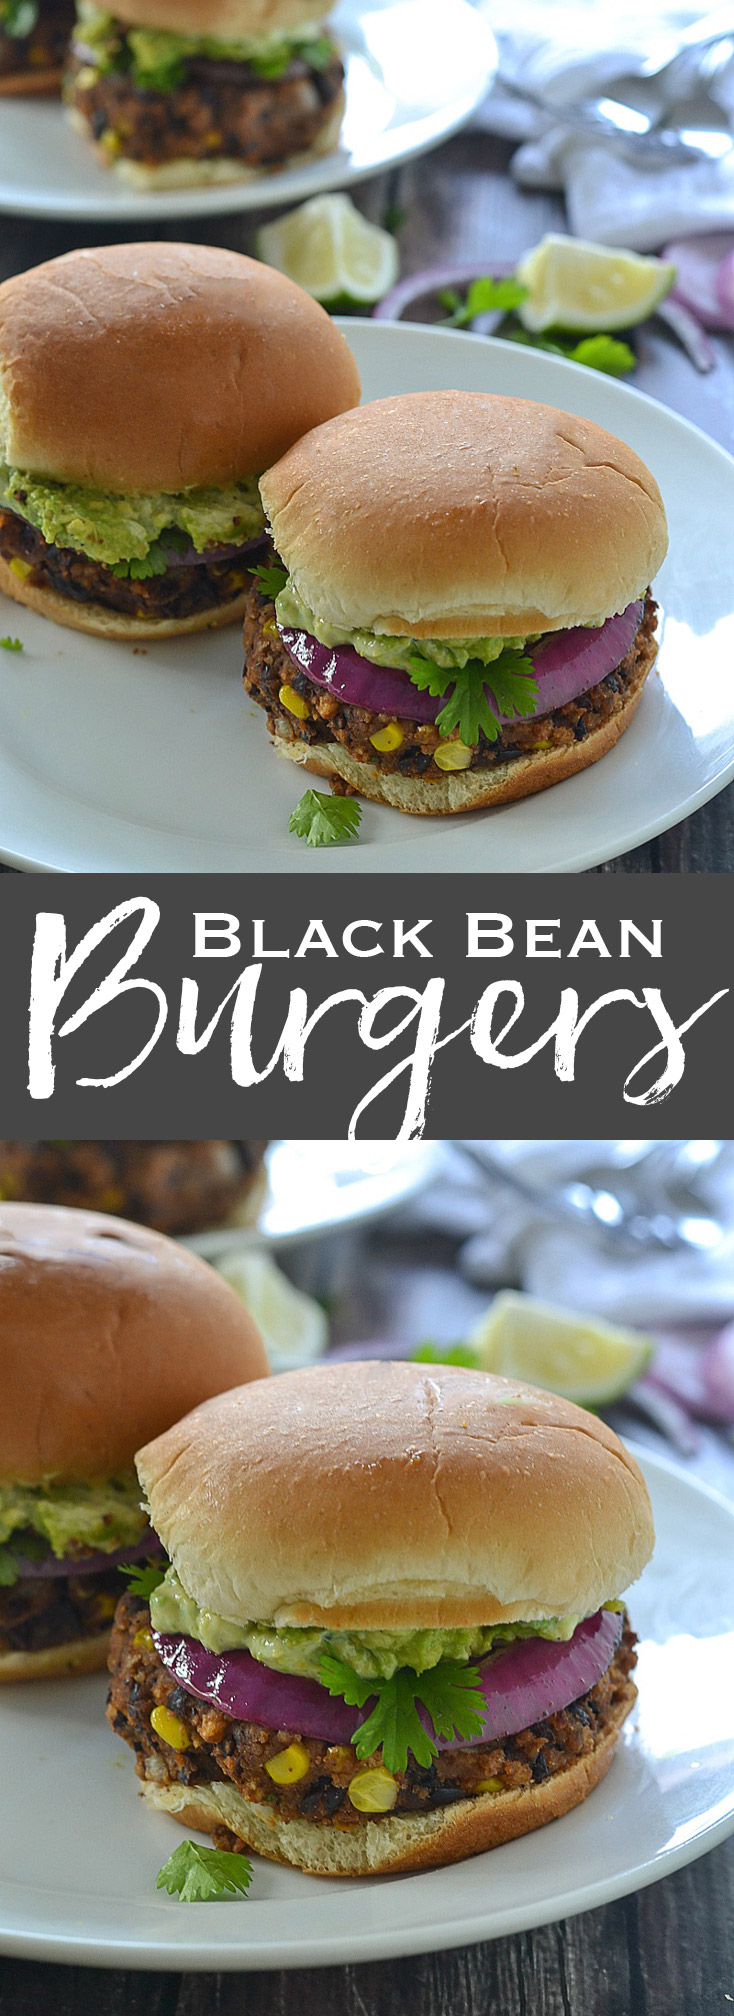 Black Bean Sliders/Burgers topped with a creamy avocado mayonnaise- www.motherthyme.com